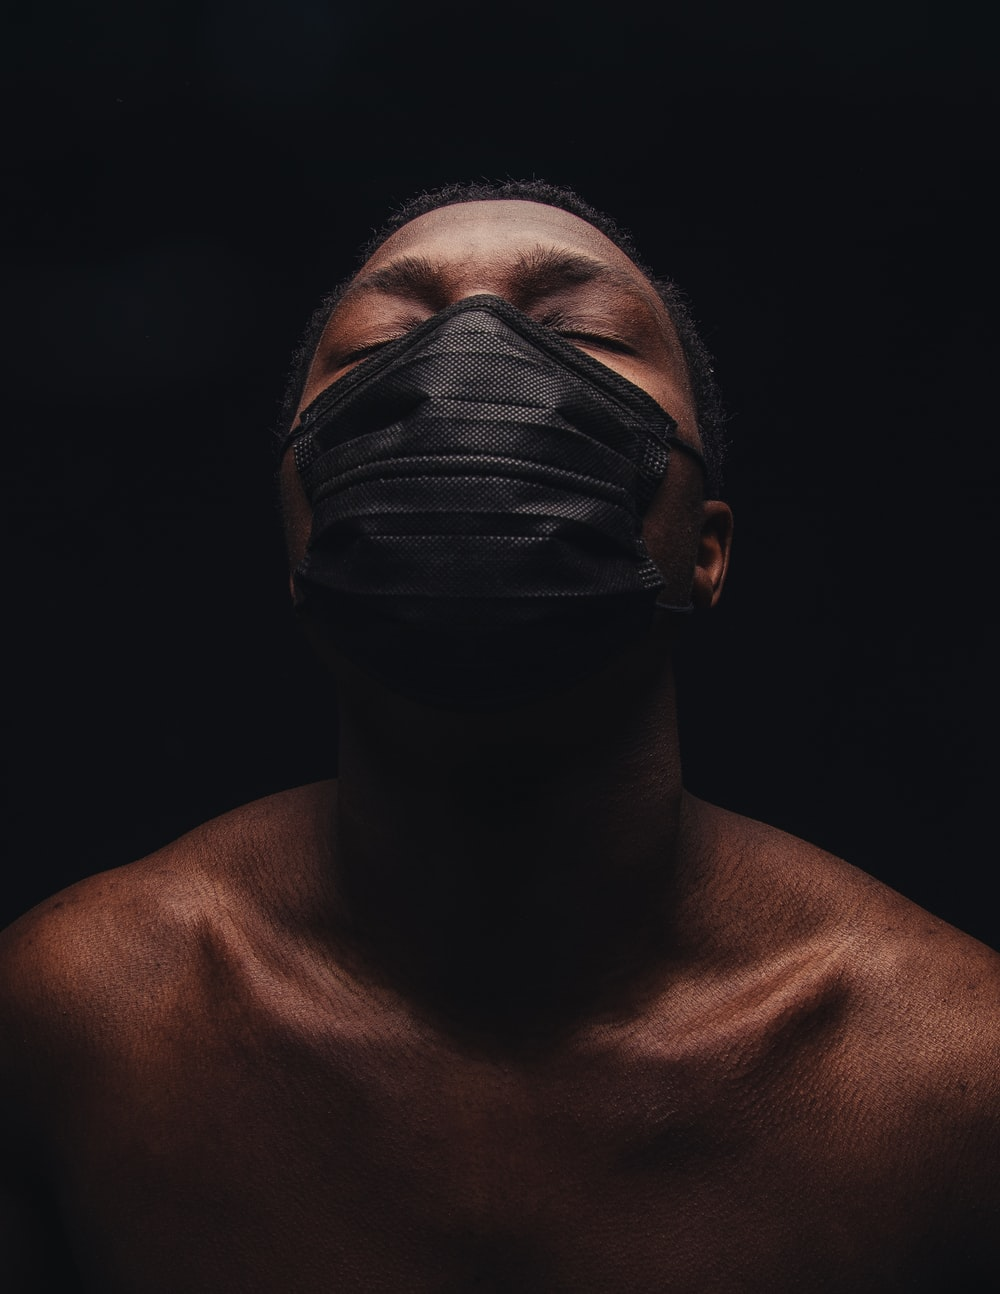 topless woman with black face mask